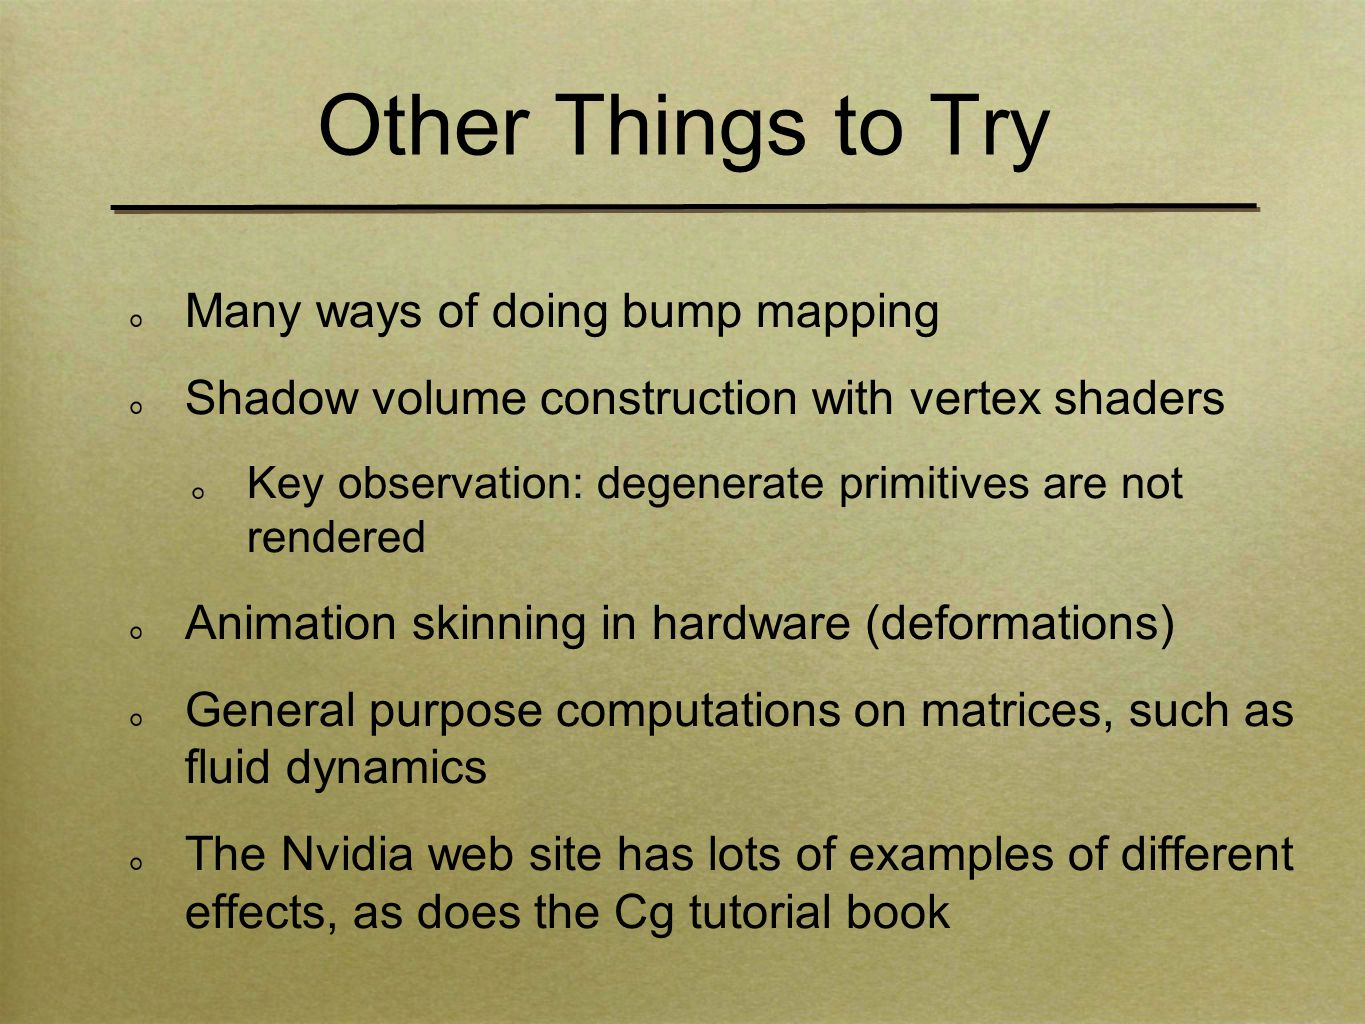 Other Things to Try Many ways of doing bump mapping Shadow volume construction with vertex shaders Key observation: degenerate primitives are not rendered Animation skinning in hardware (deformations) General purpose computations on matrices, such as fluid dynamics The Nvidia web site has lots of examples of different effects, as does the Cg tutorial book